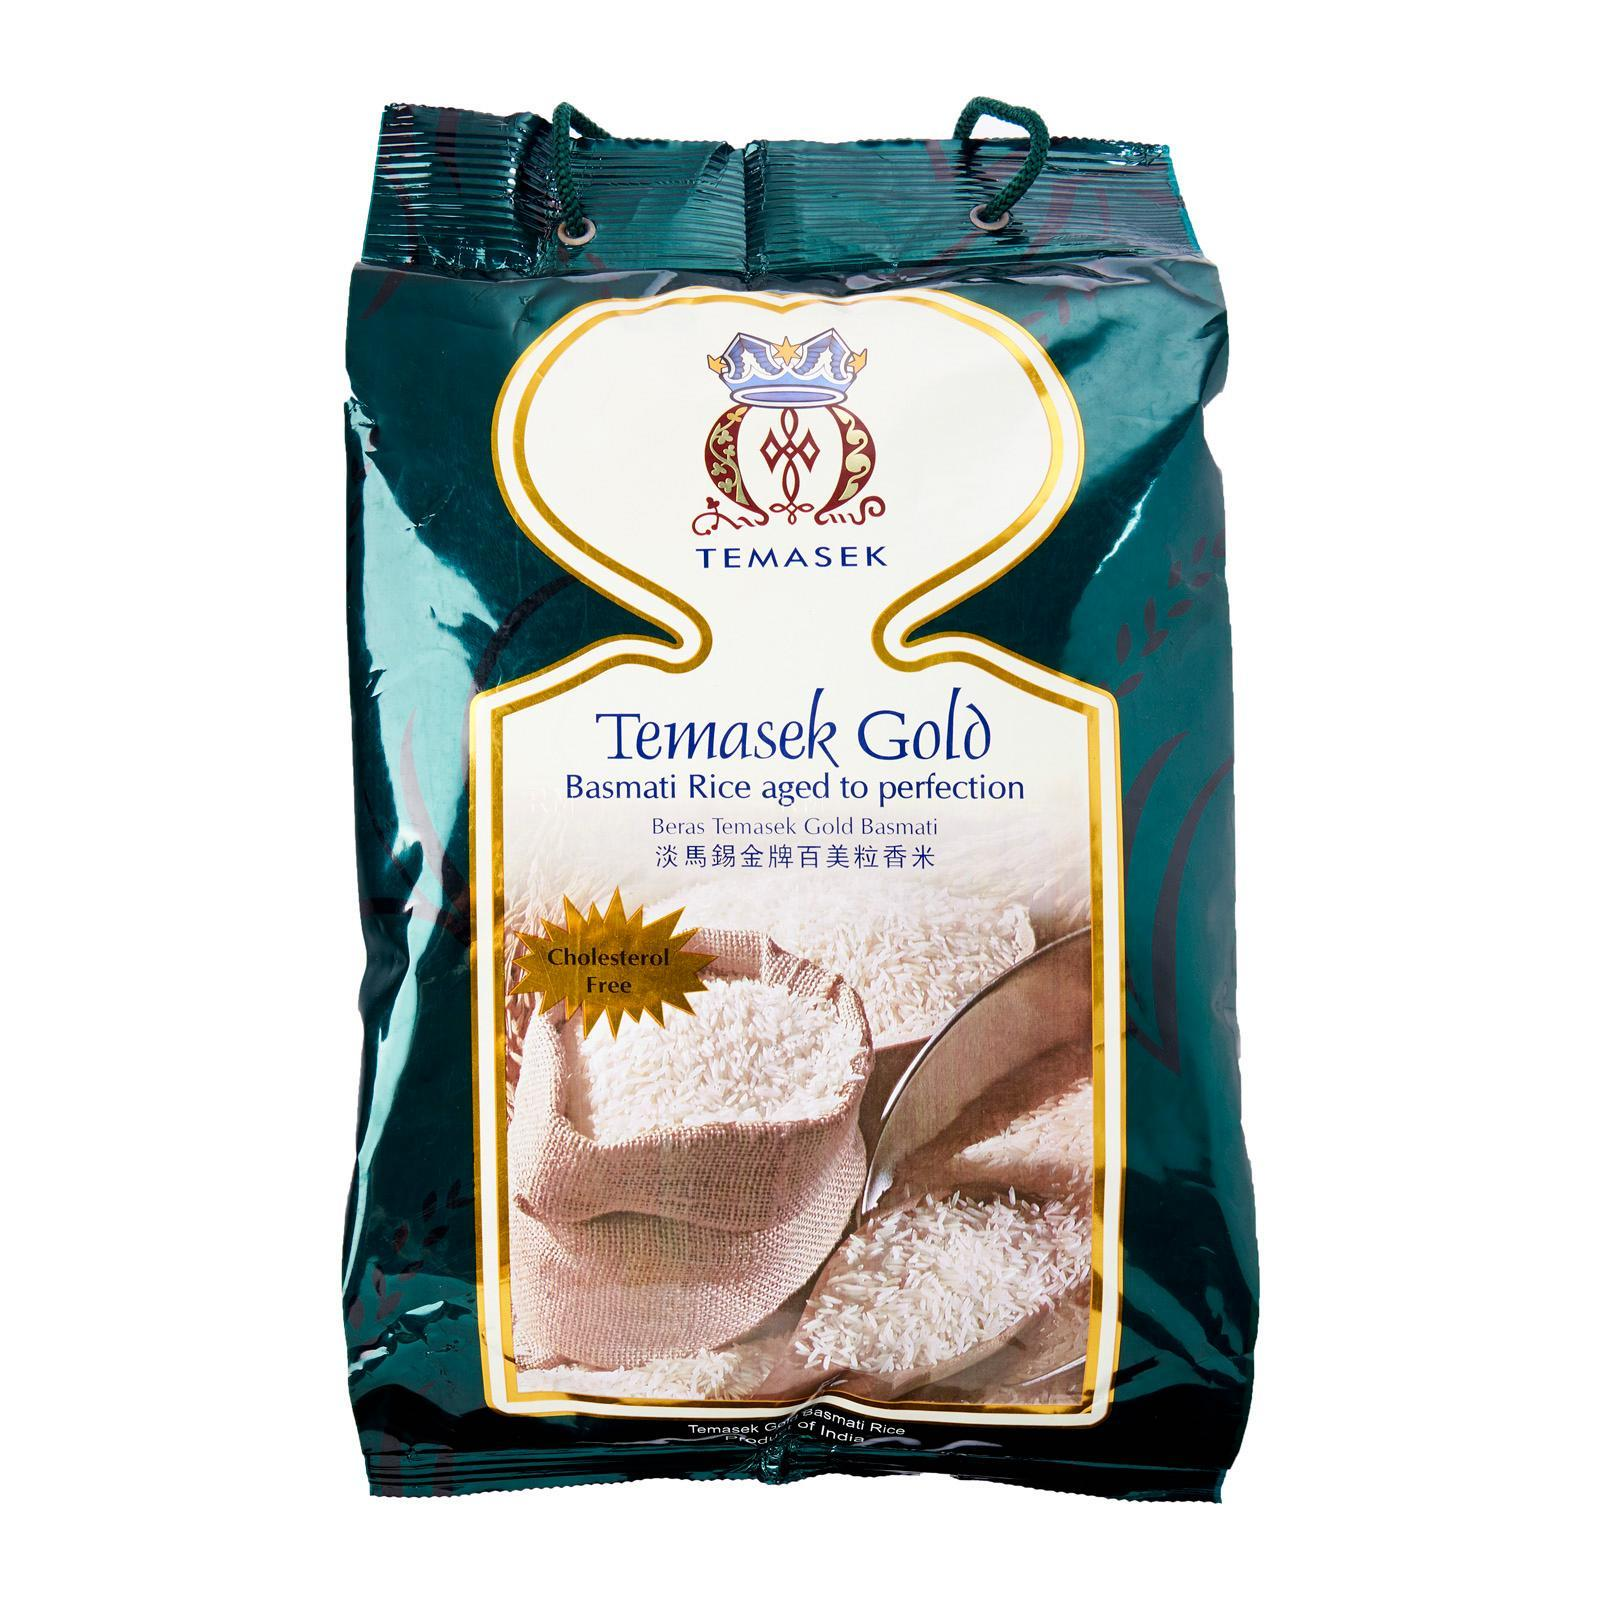 Temasek Gold Basmati Rice 5kg - By Dashmesh By Redmart.